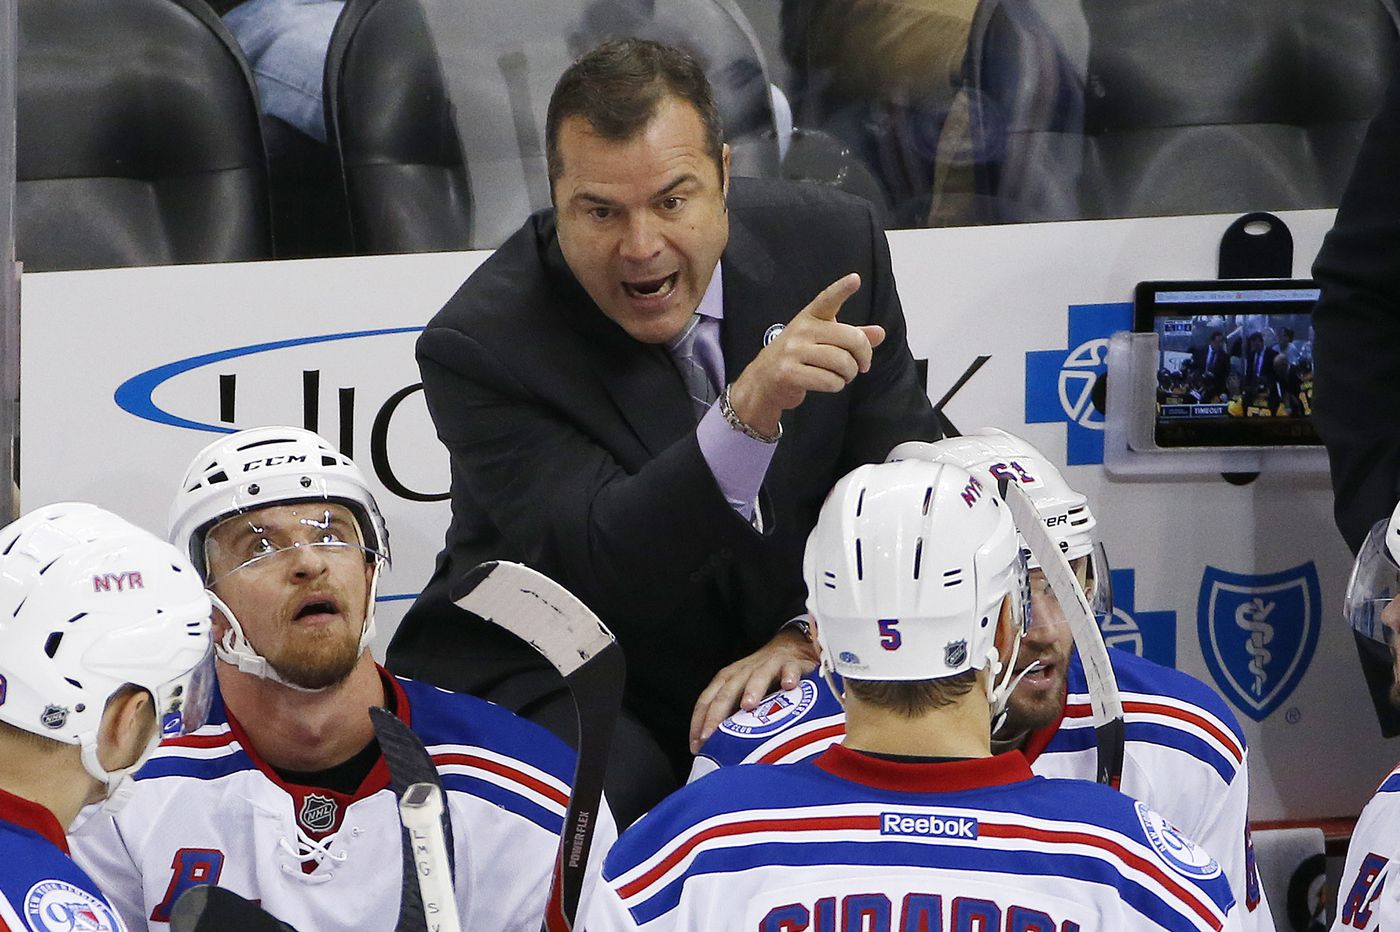 Alain Vigneault is terrific, but you should still be skeptical of the Flyers' decision to hire him | Mike Siel